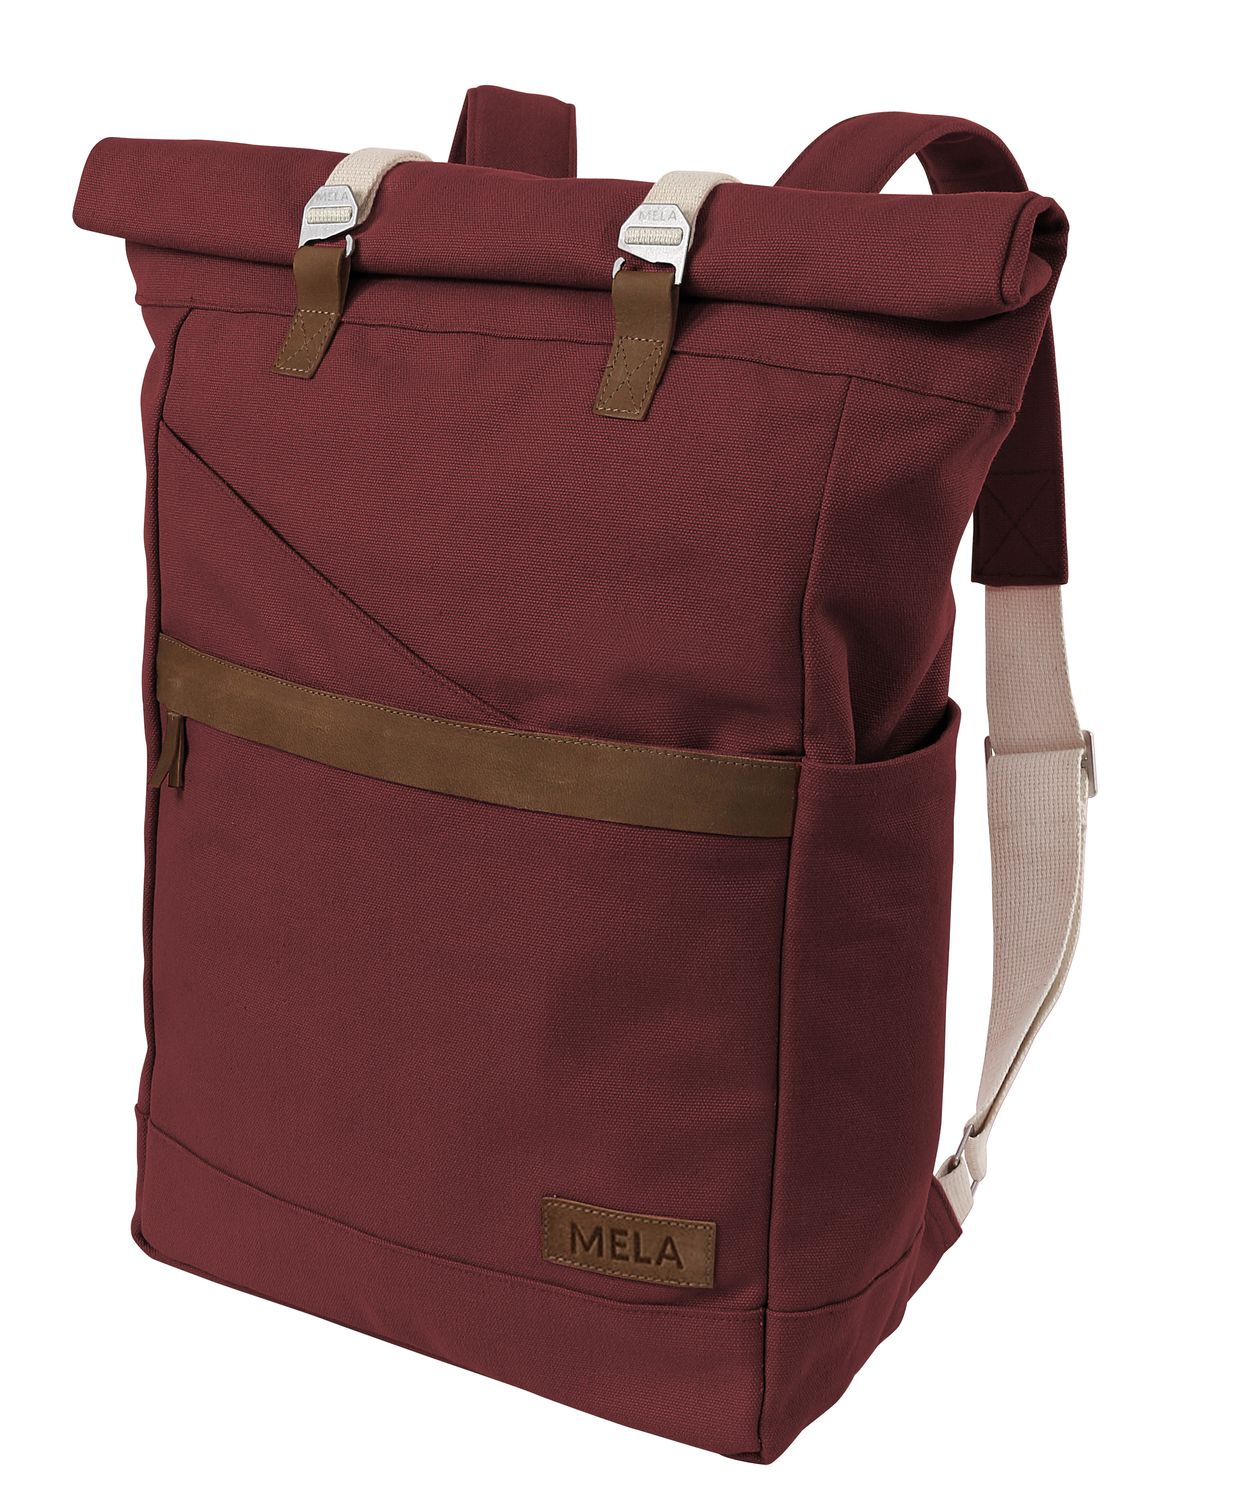 Enlargeable Organic Cotton Backpack Impregnated with Beeswax